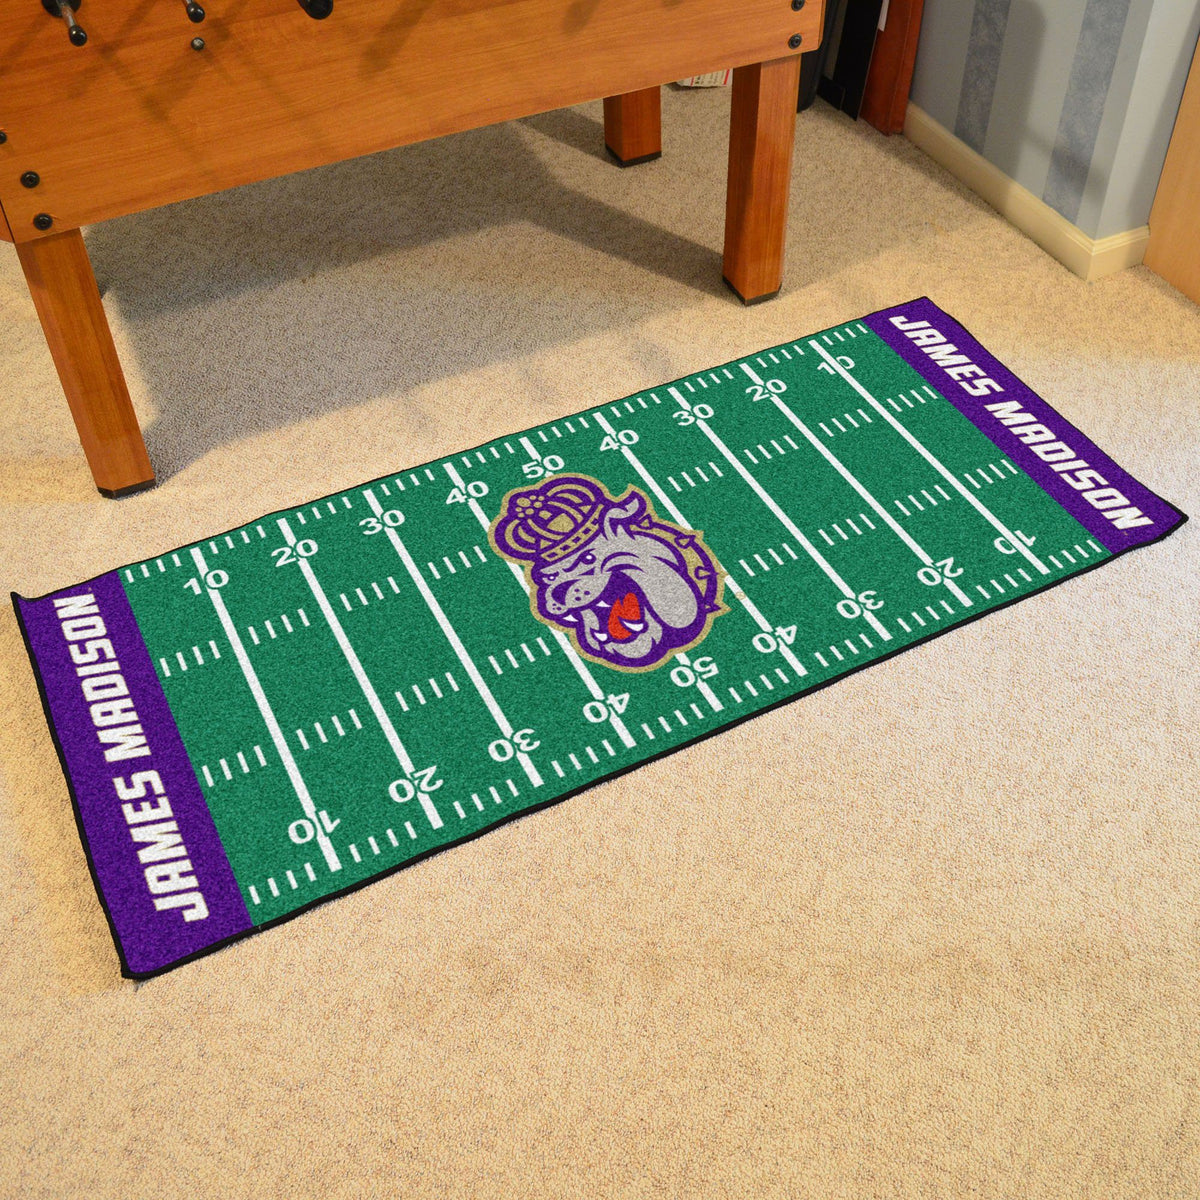 Collegiate - Football Field Runner Collegiate Mats, Rectangular Mats, Football Field Runner, Collegiate, Home Fan Mats James Madison